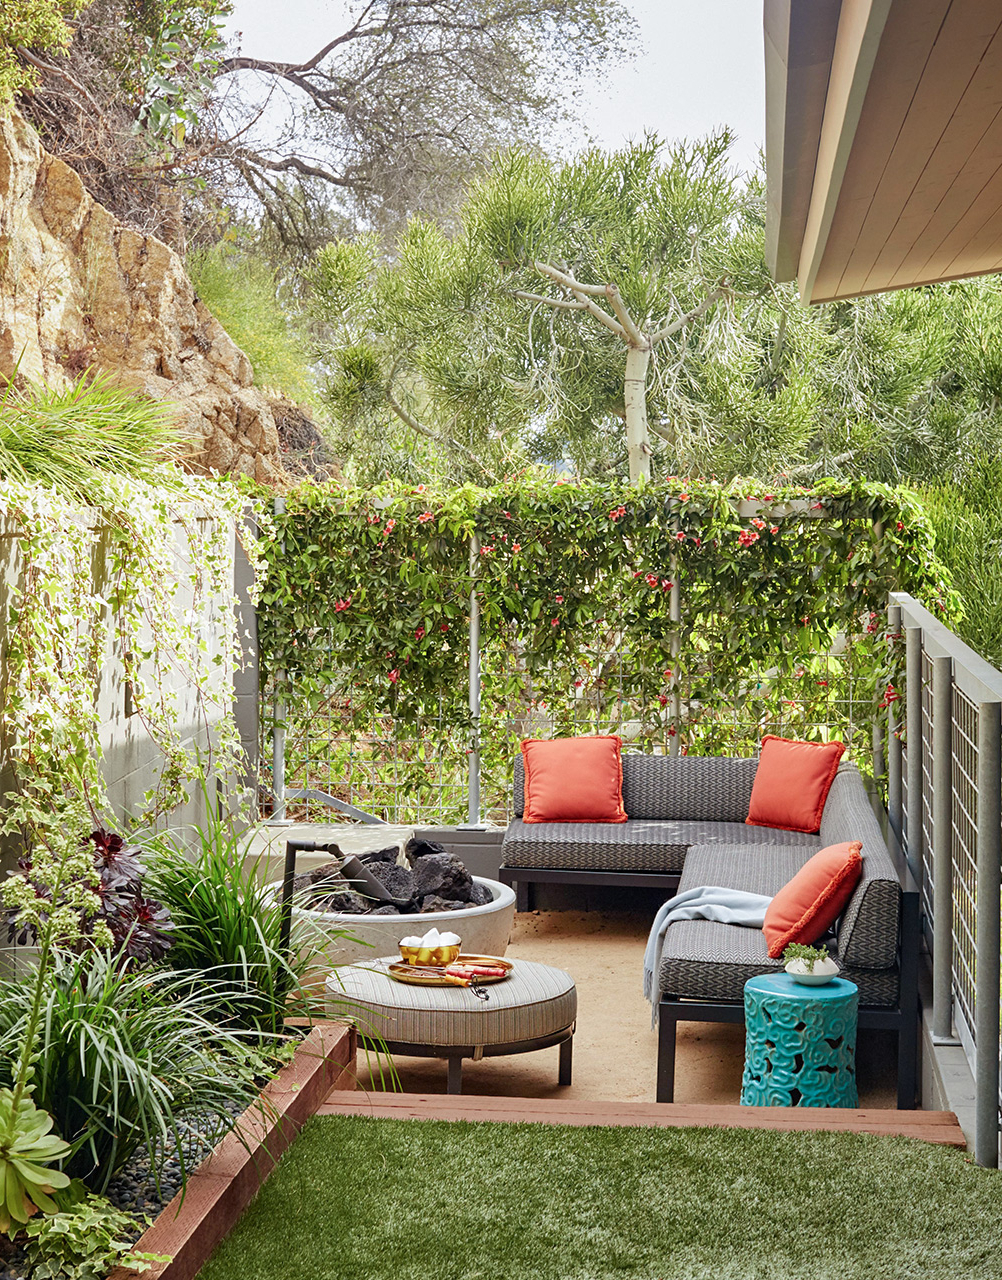 24 Budget Friendly Backyard Ideas To Create The Ultimate